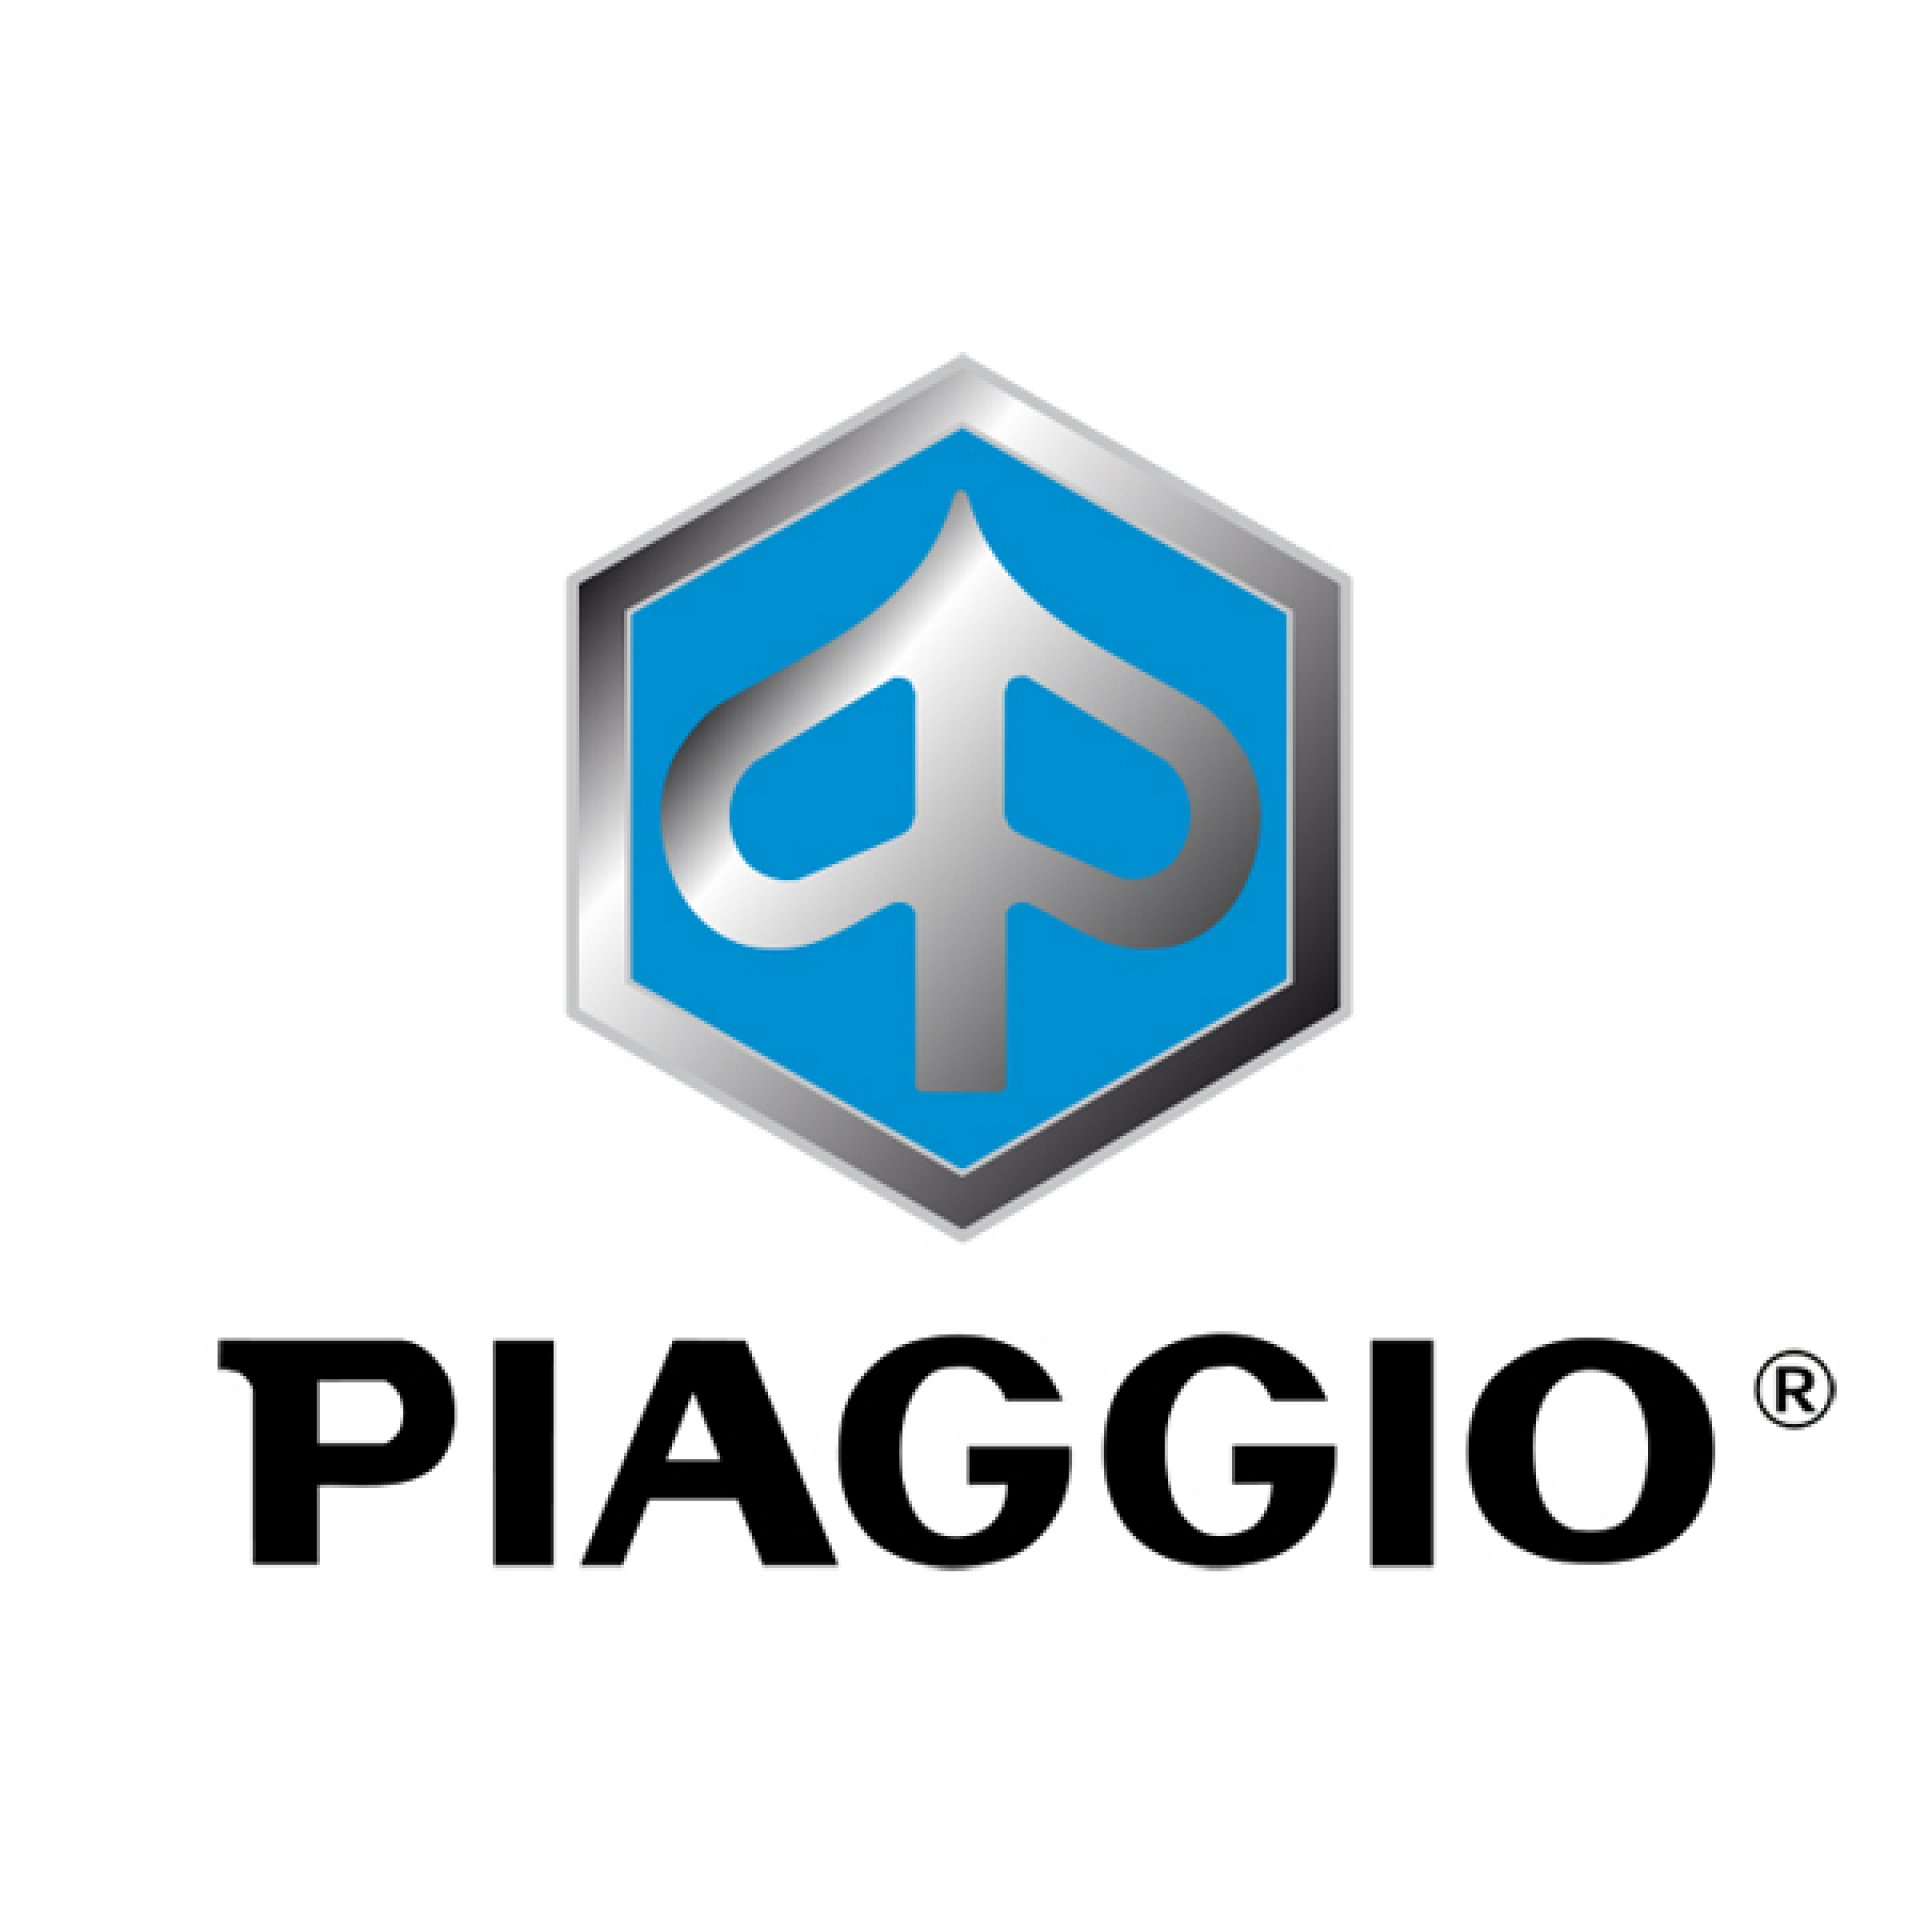 Piaggio Genuine Parts for sale